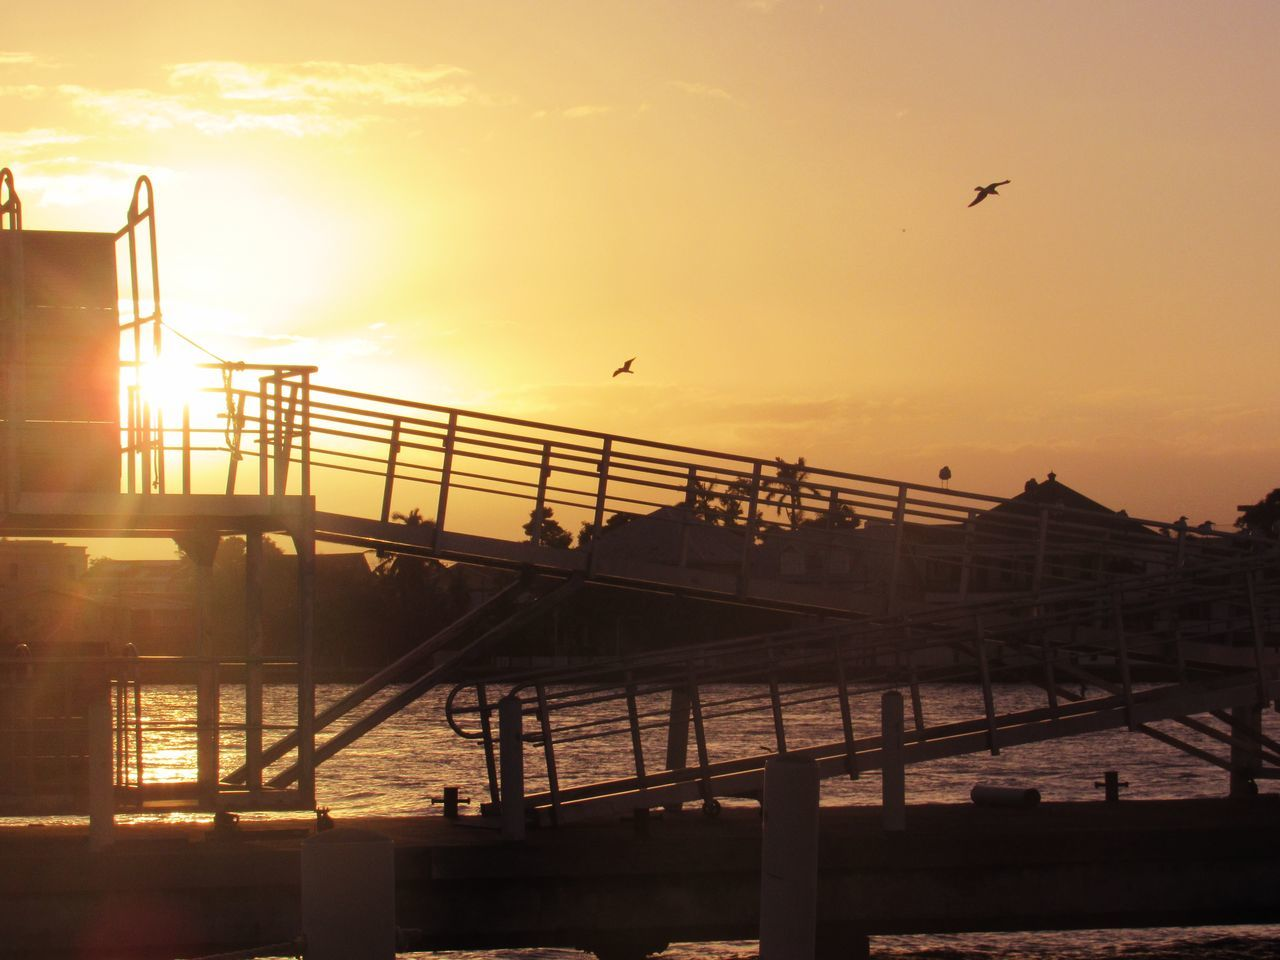 Sunset Railing Travel Destinations Built Structure Steps And Staircases No People Architecture Sun Sky Golden Hour Belize Harbour Nautical Vessel Vacations Harbour Lights Harbour View Belize City Belize  Harbour Life Scenics Tranquil Scene